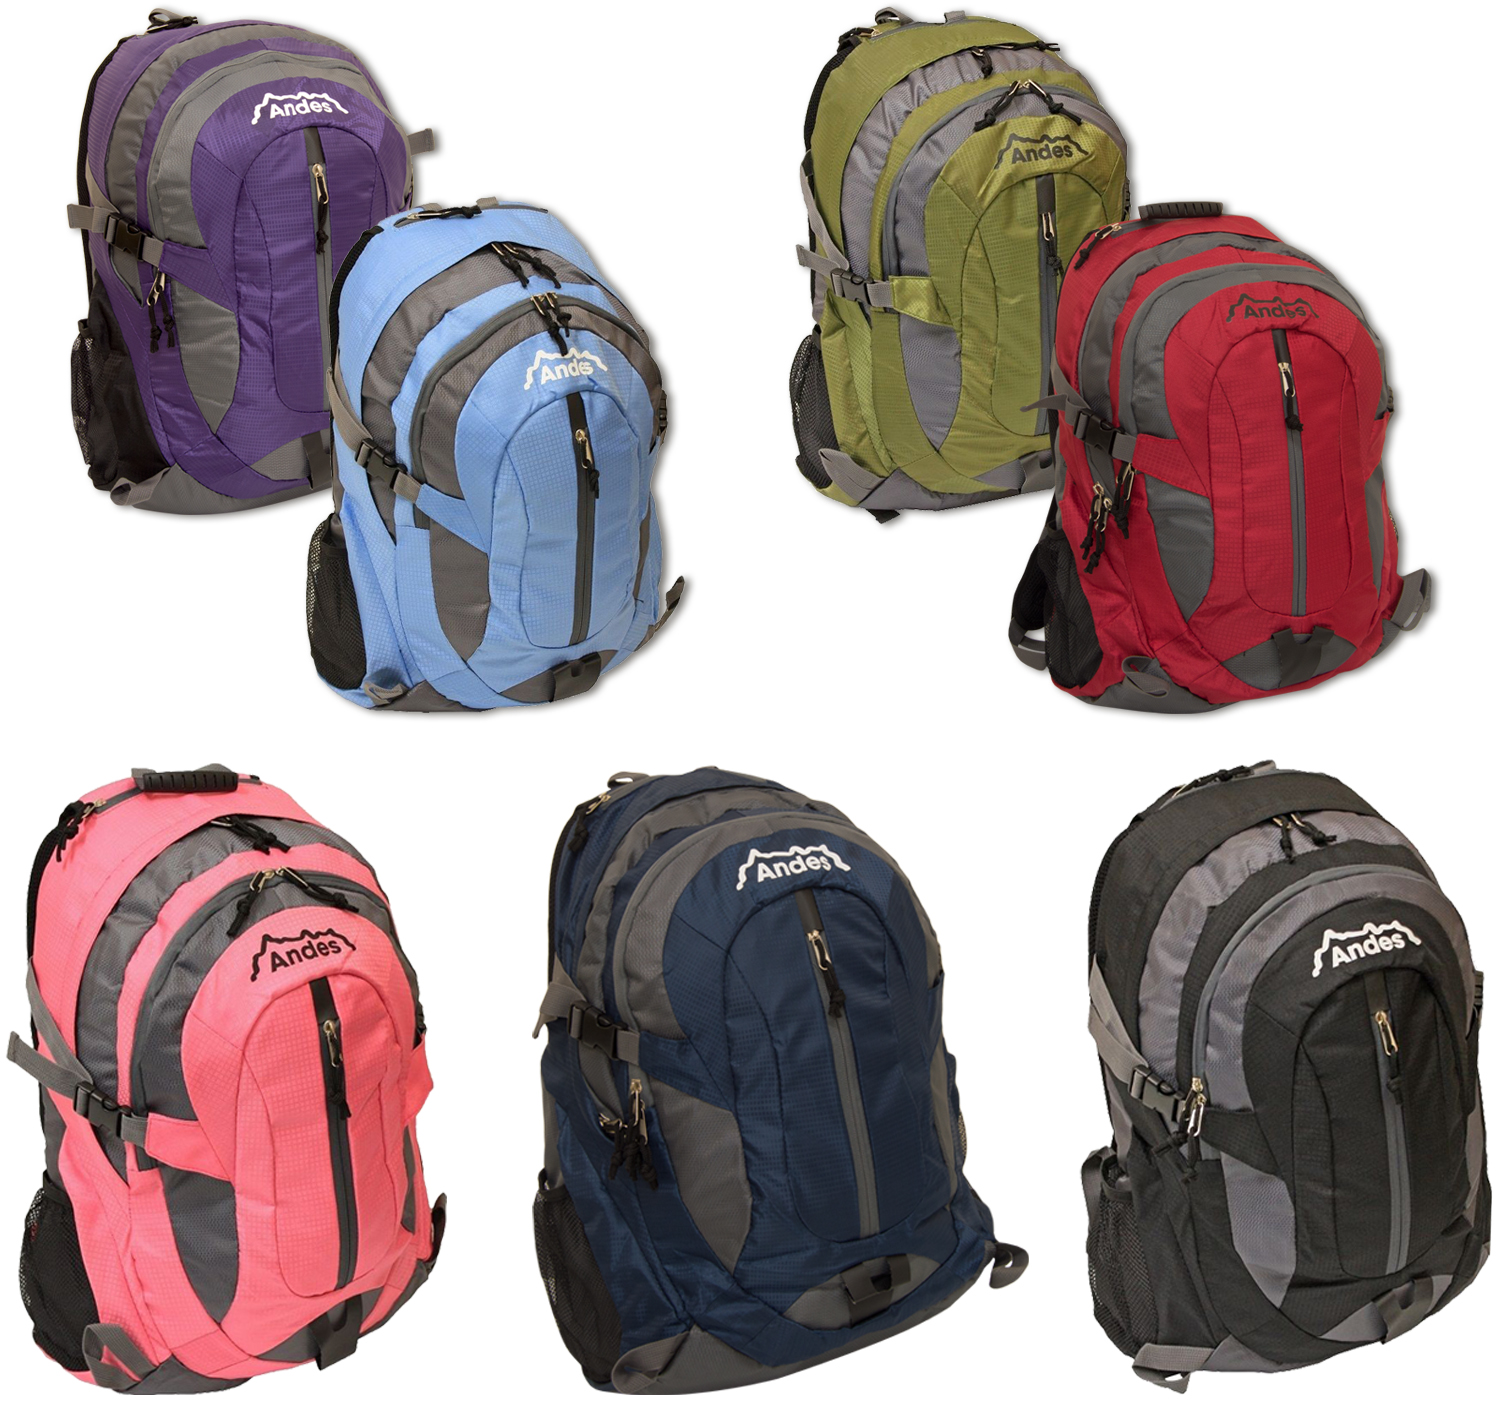 35 litre rucksack backpack bag for camping hiking travel school ebay. Black Bedroom Furniture Sets. Home Design Ideas